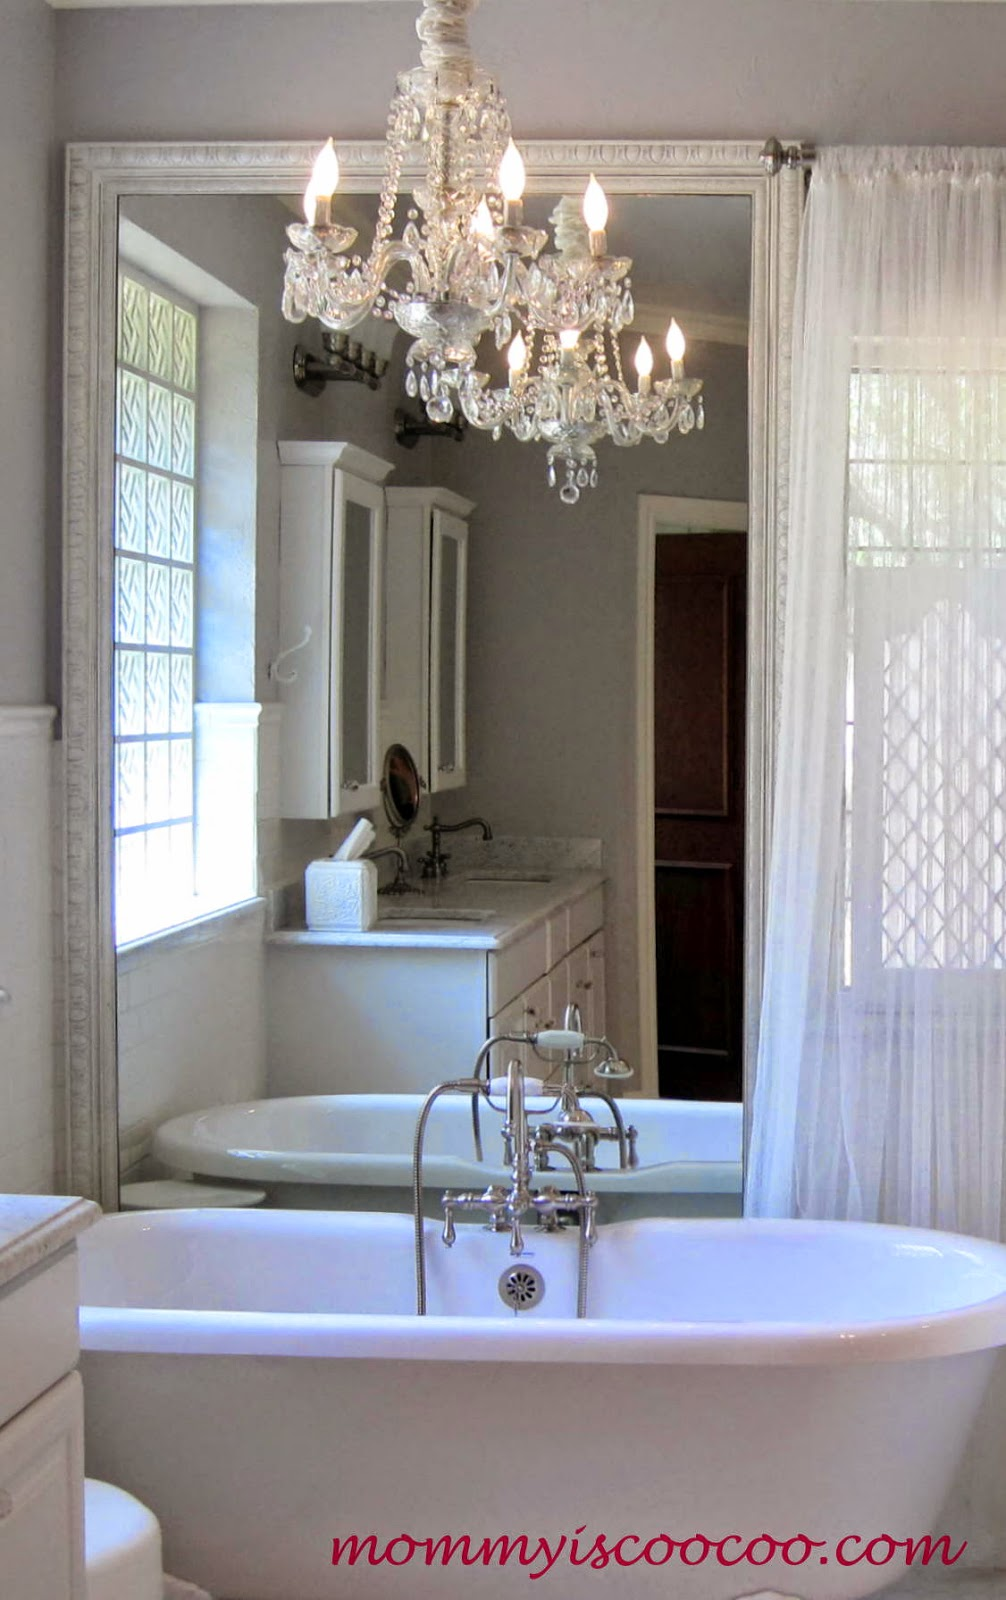 Beautiful How to remove a large builder grade vanity mirror Mommy is Coocoo on Remodelaholic